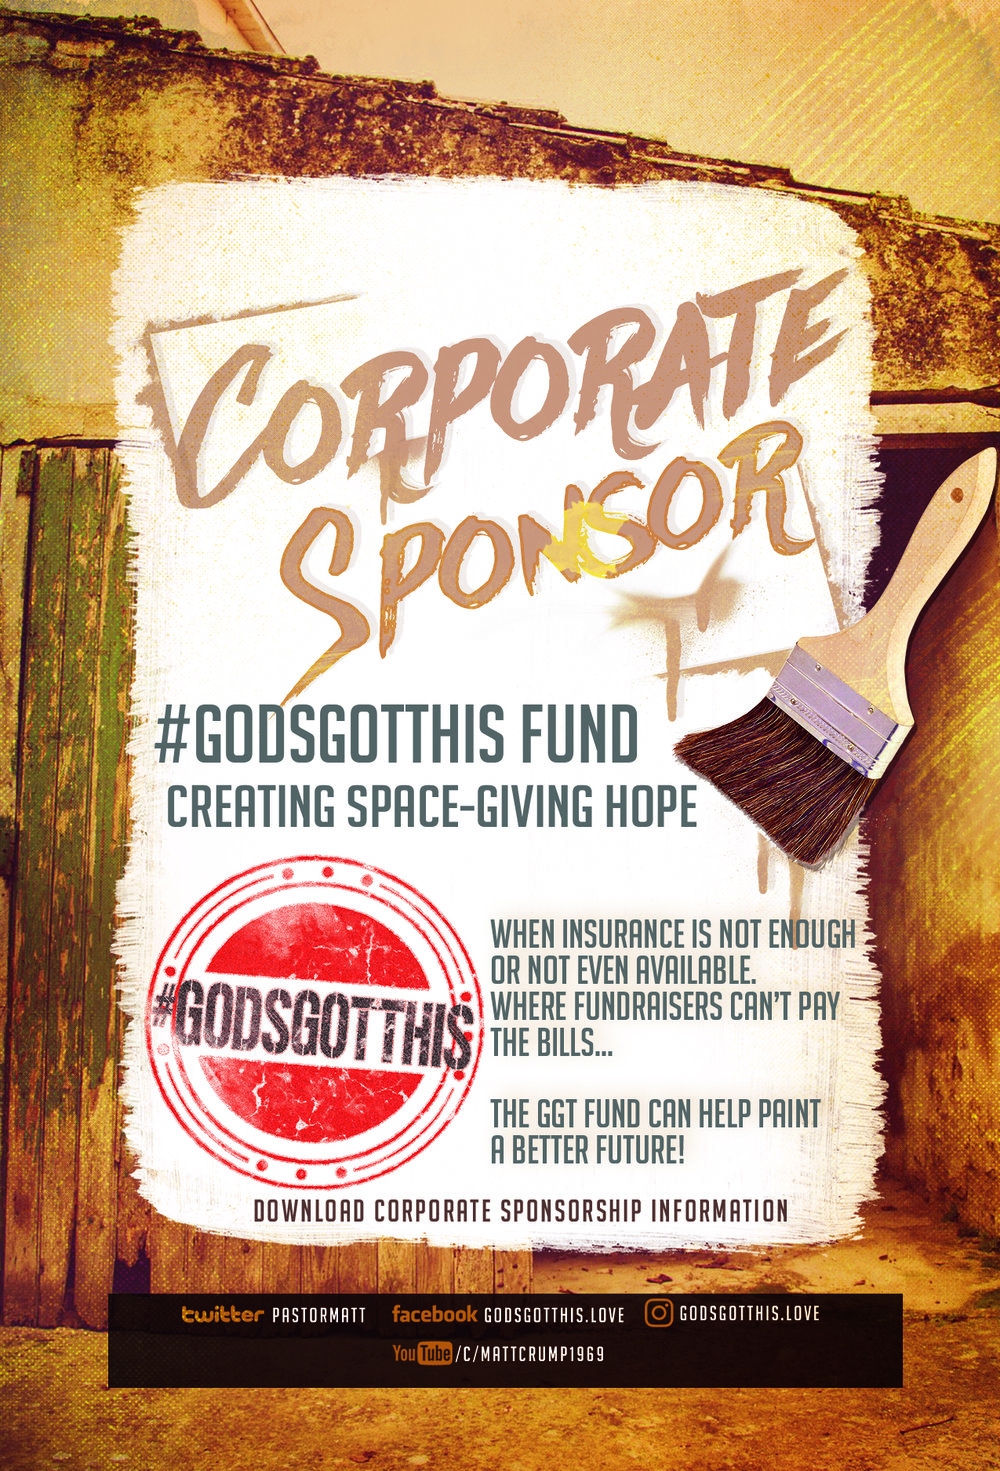 YOU CAN HELP THOSE THAT REALLY NEED THE HELP. ALL GIFTS ARE TAX DEDUCTIBLE. PLEASE MENTION THE GOD'S GOT THIS FUND FOR CORPORATE SPONSORSHIPS.